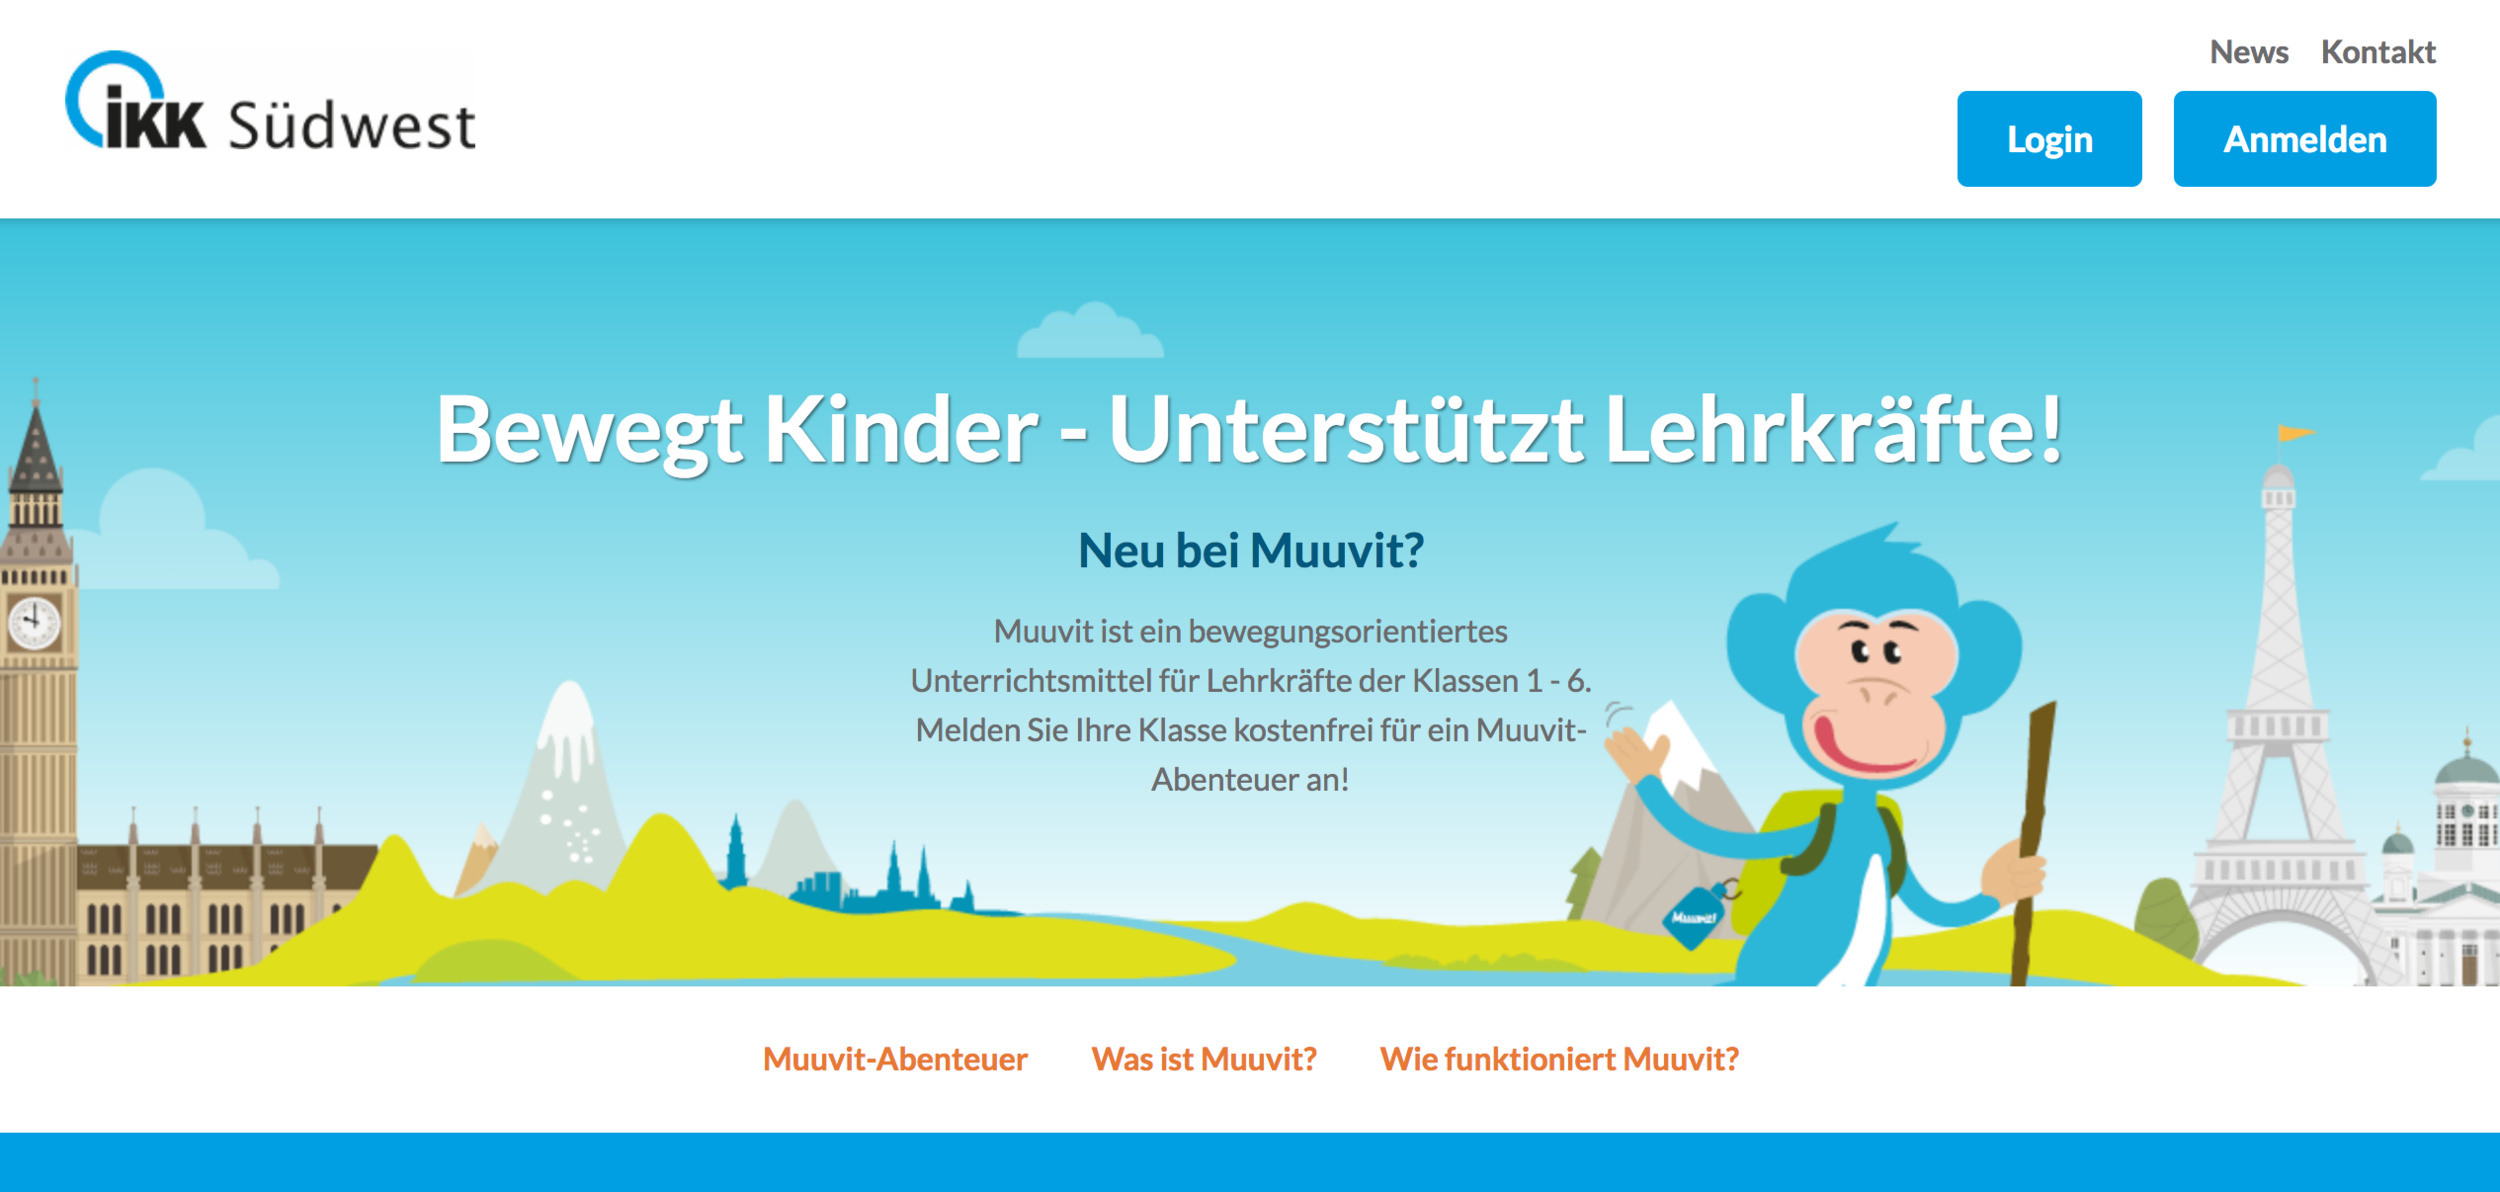 IKK Health Insurance - IKK health insurance with approximately 700 000 insured members in South-West Germany, applies Muuvit as a health promotion and community engagement tool.